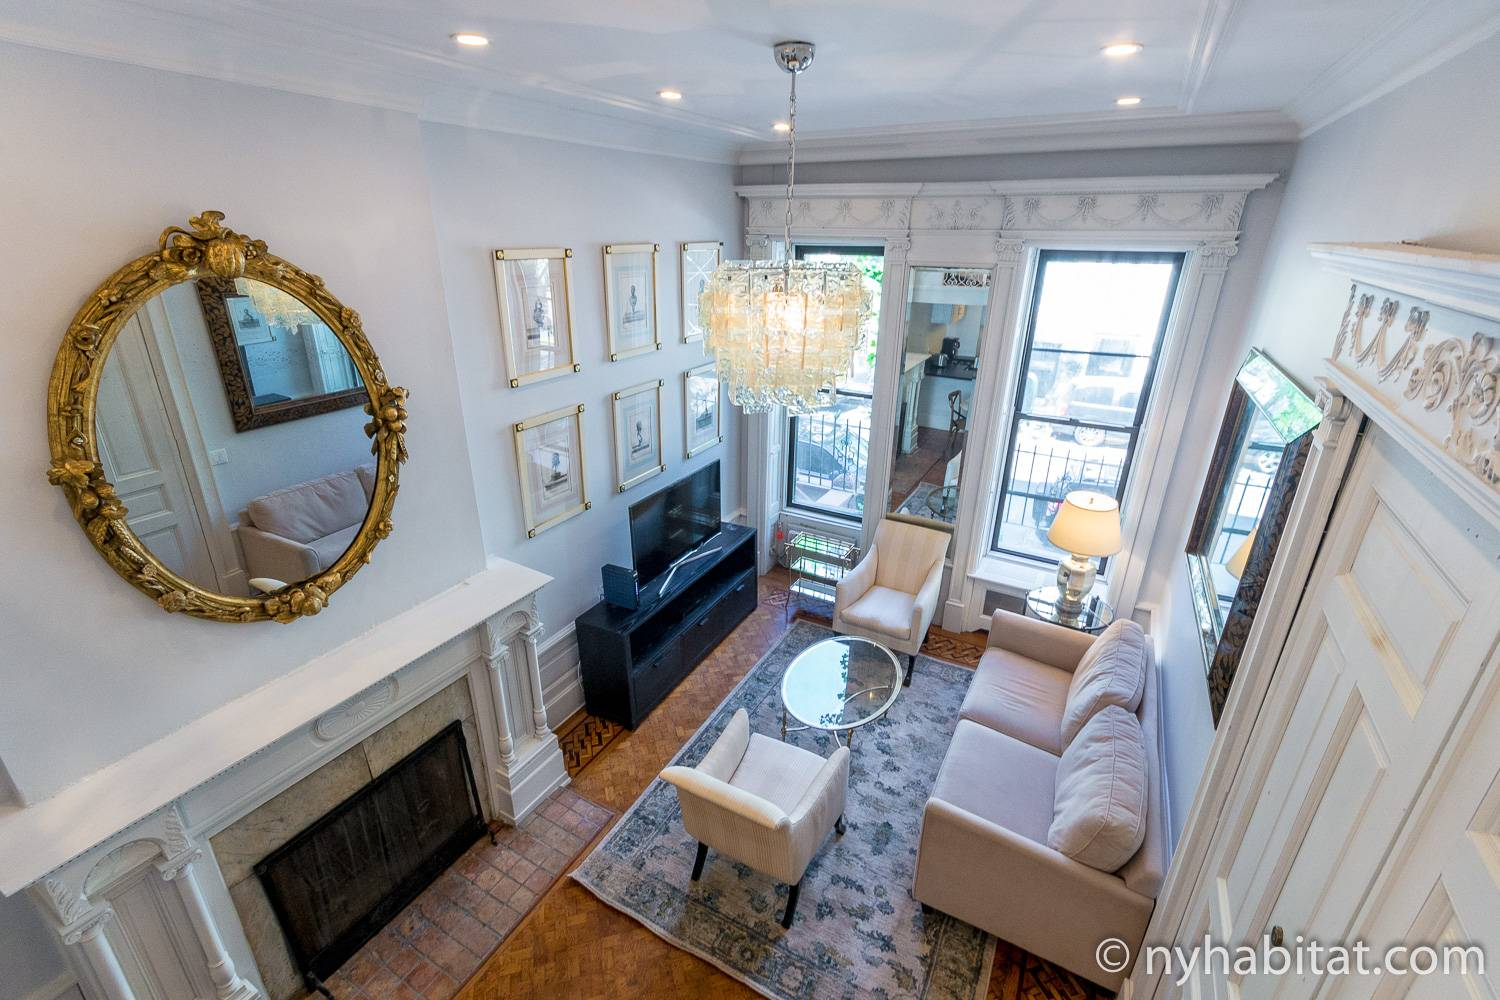 Image of living area in NY-16873 with fireplace, couches, high ceilings and chandelier